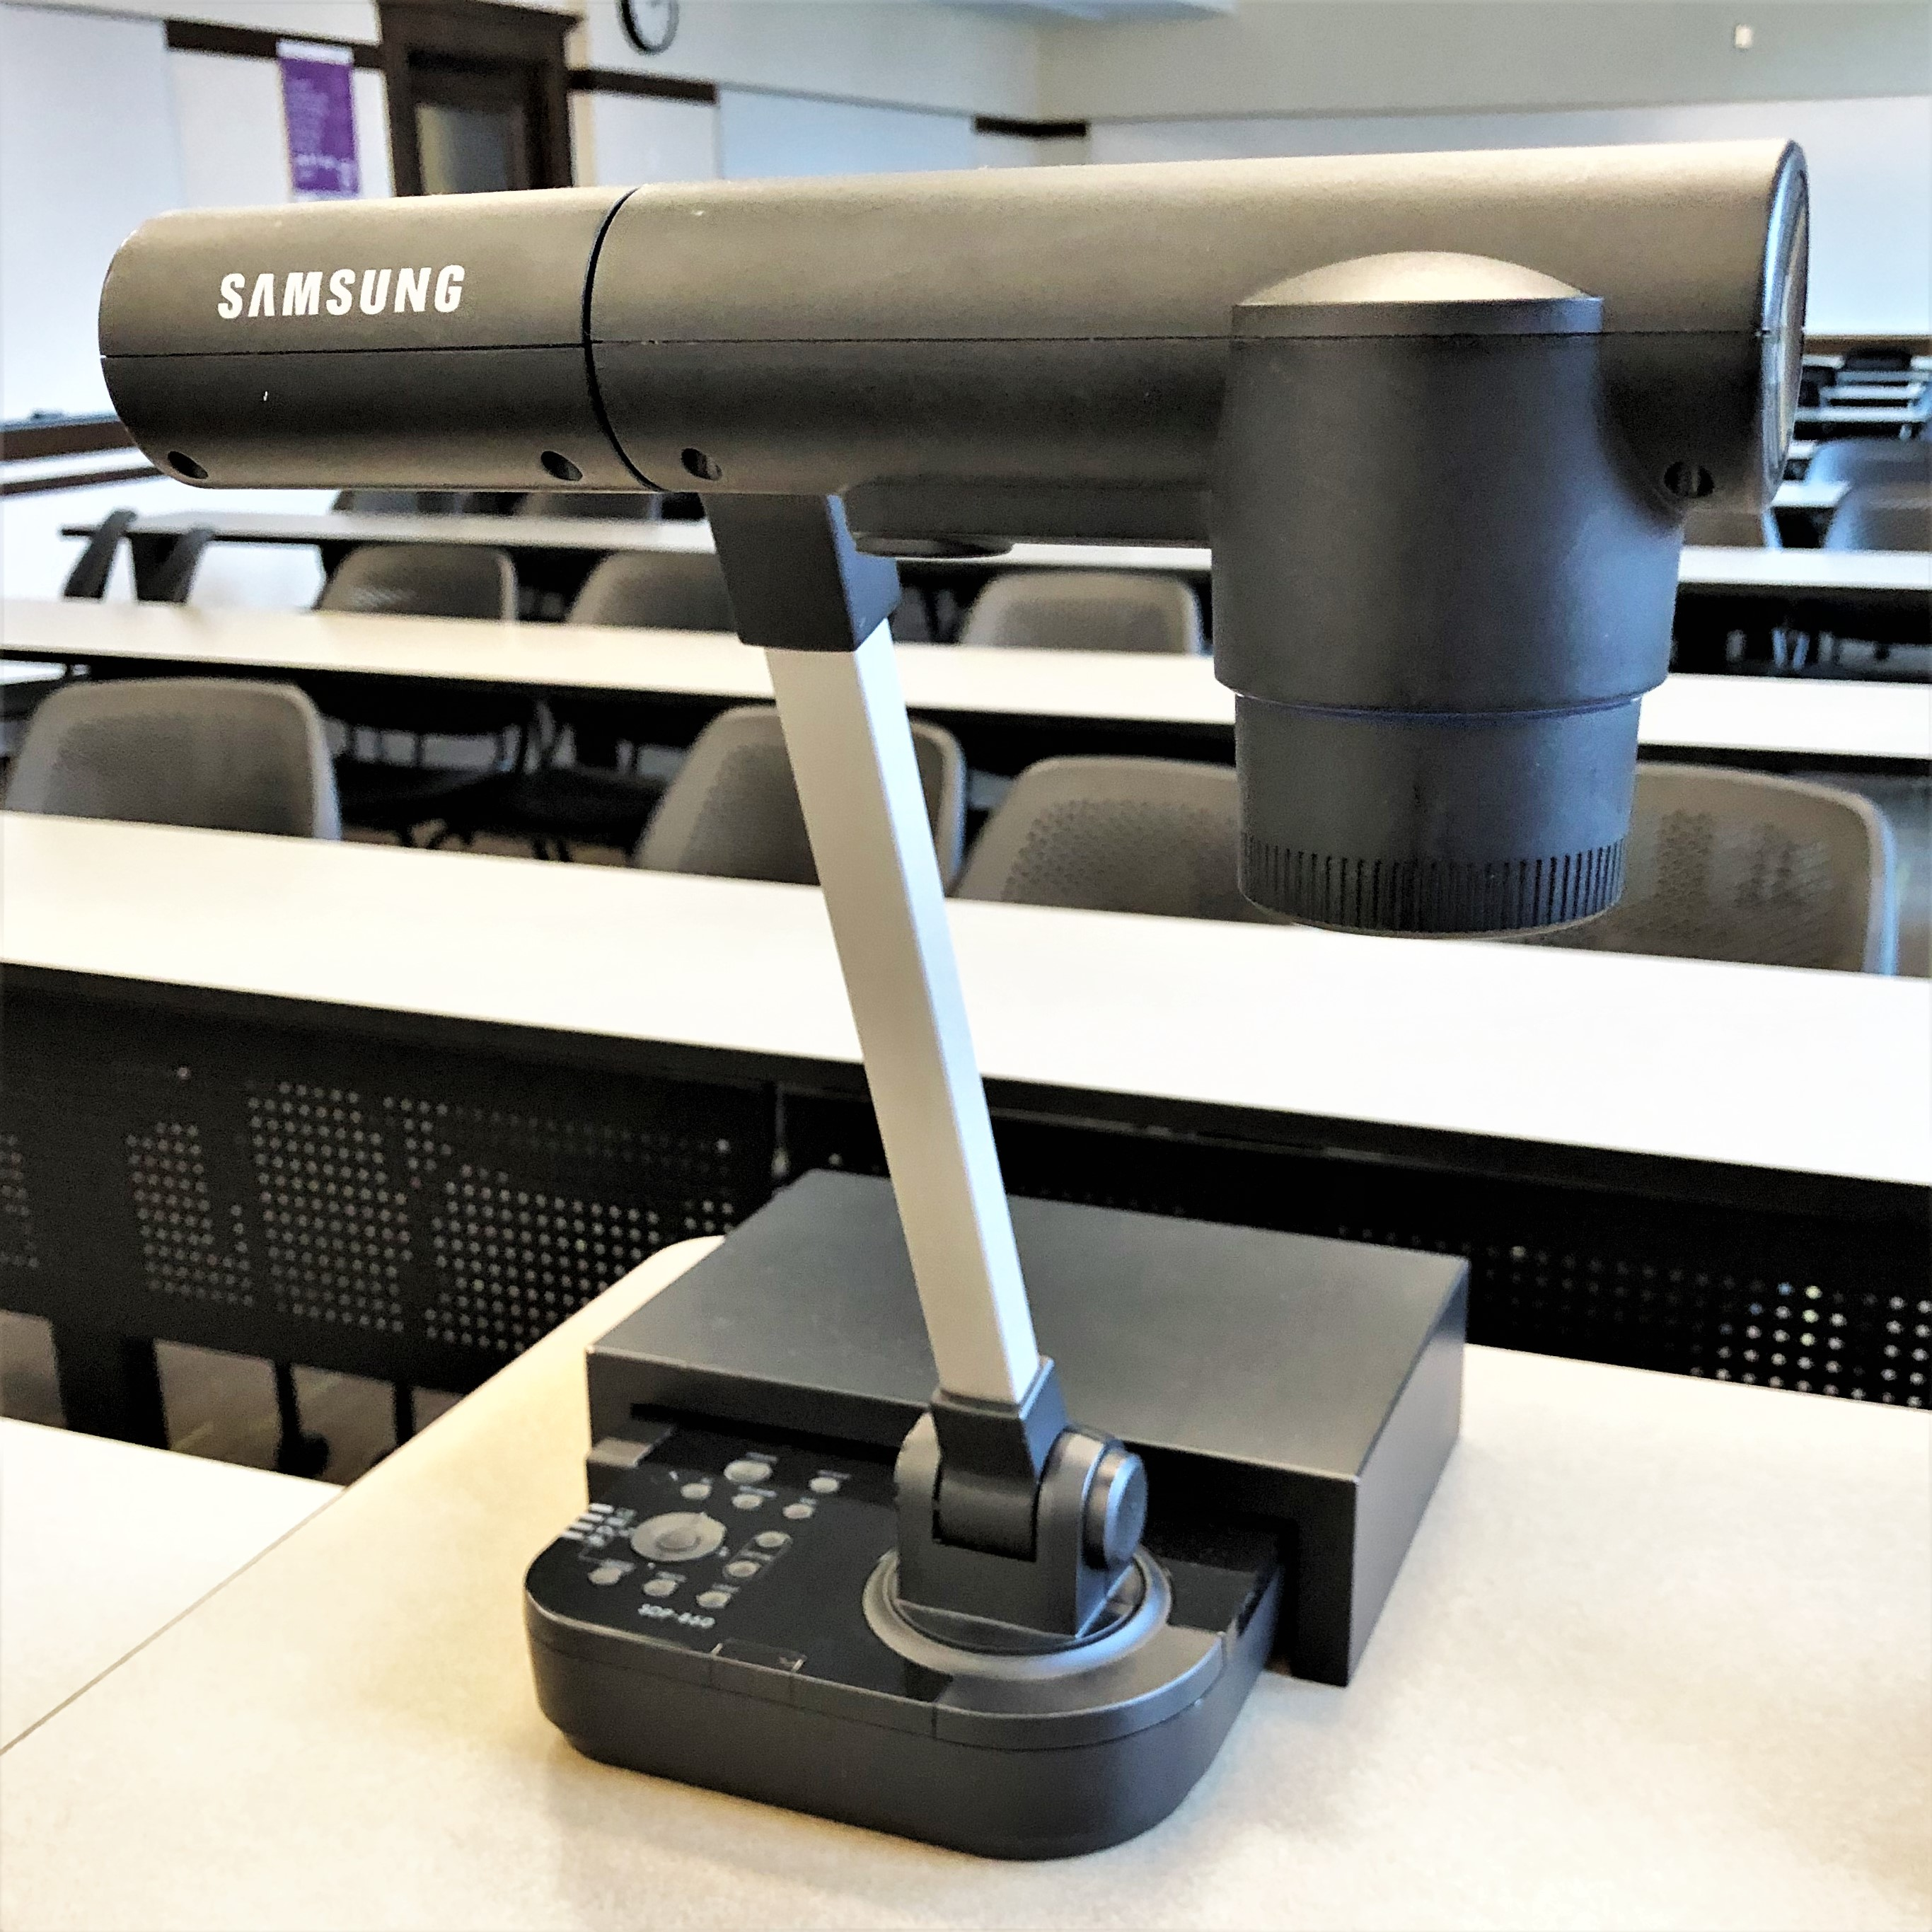 Samsung SDP-860 model document camera